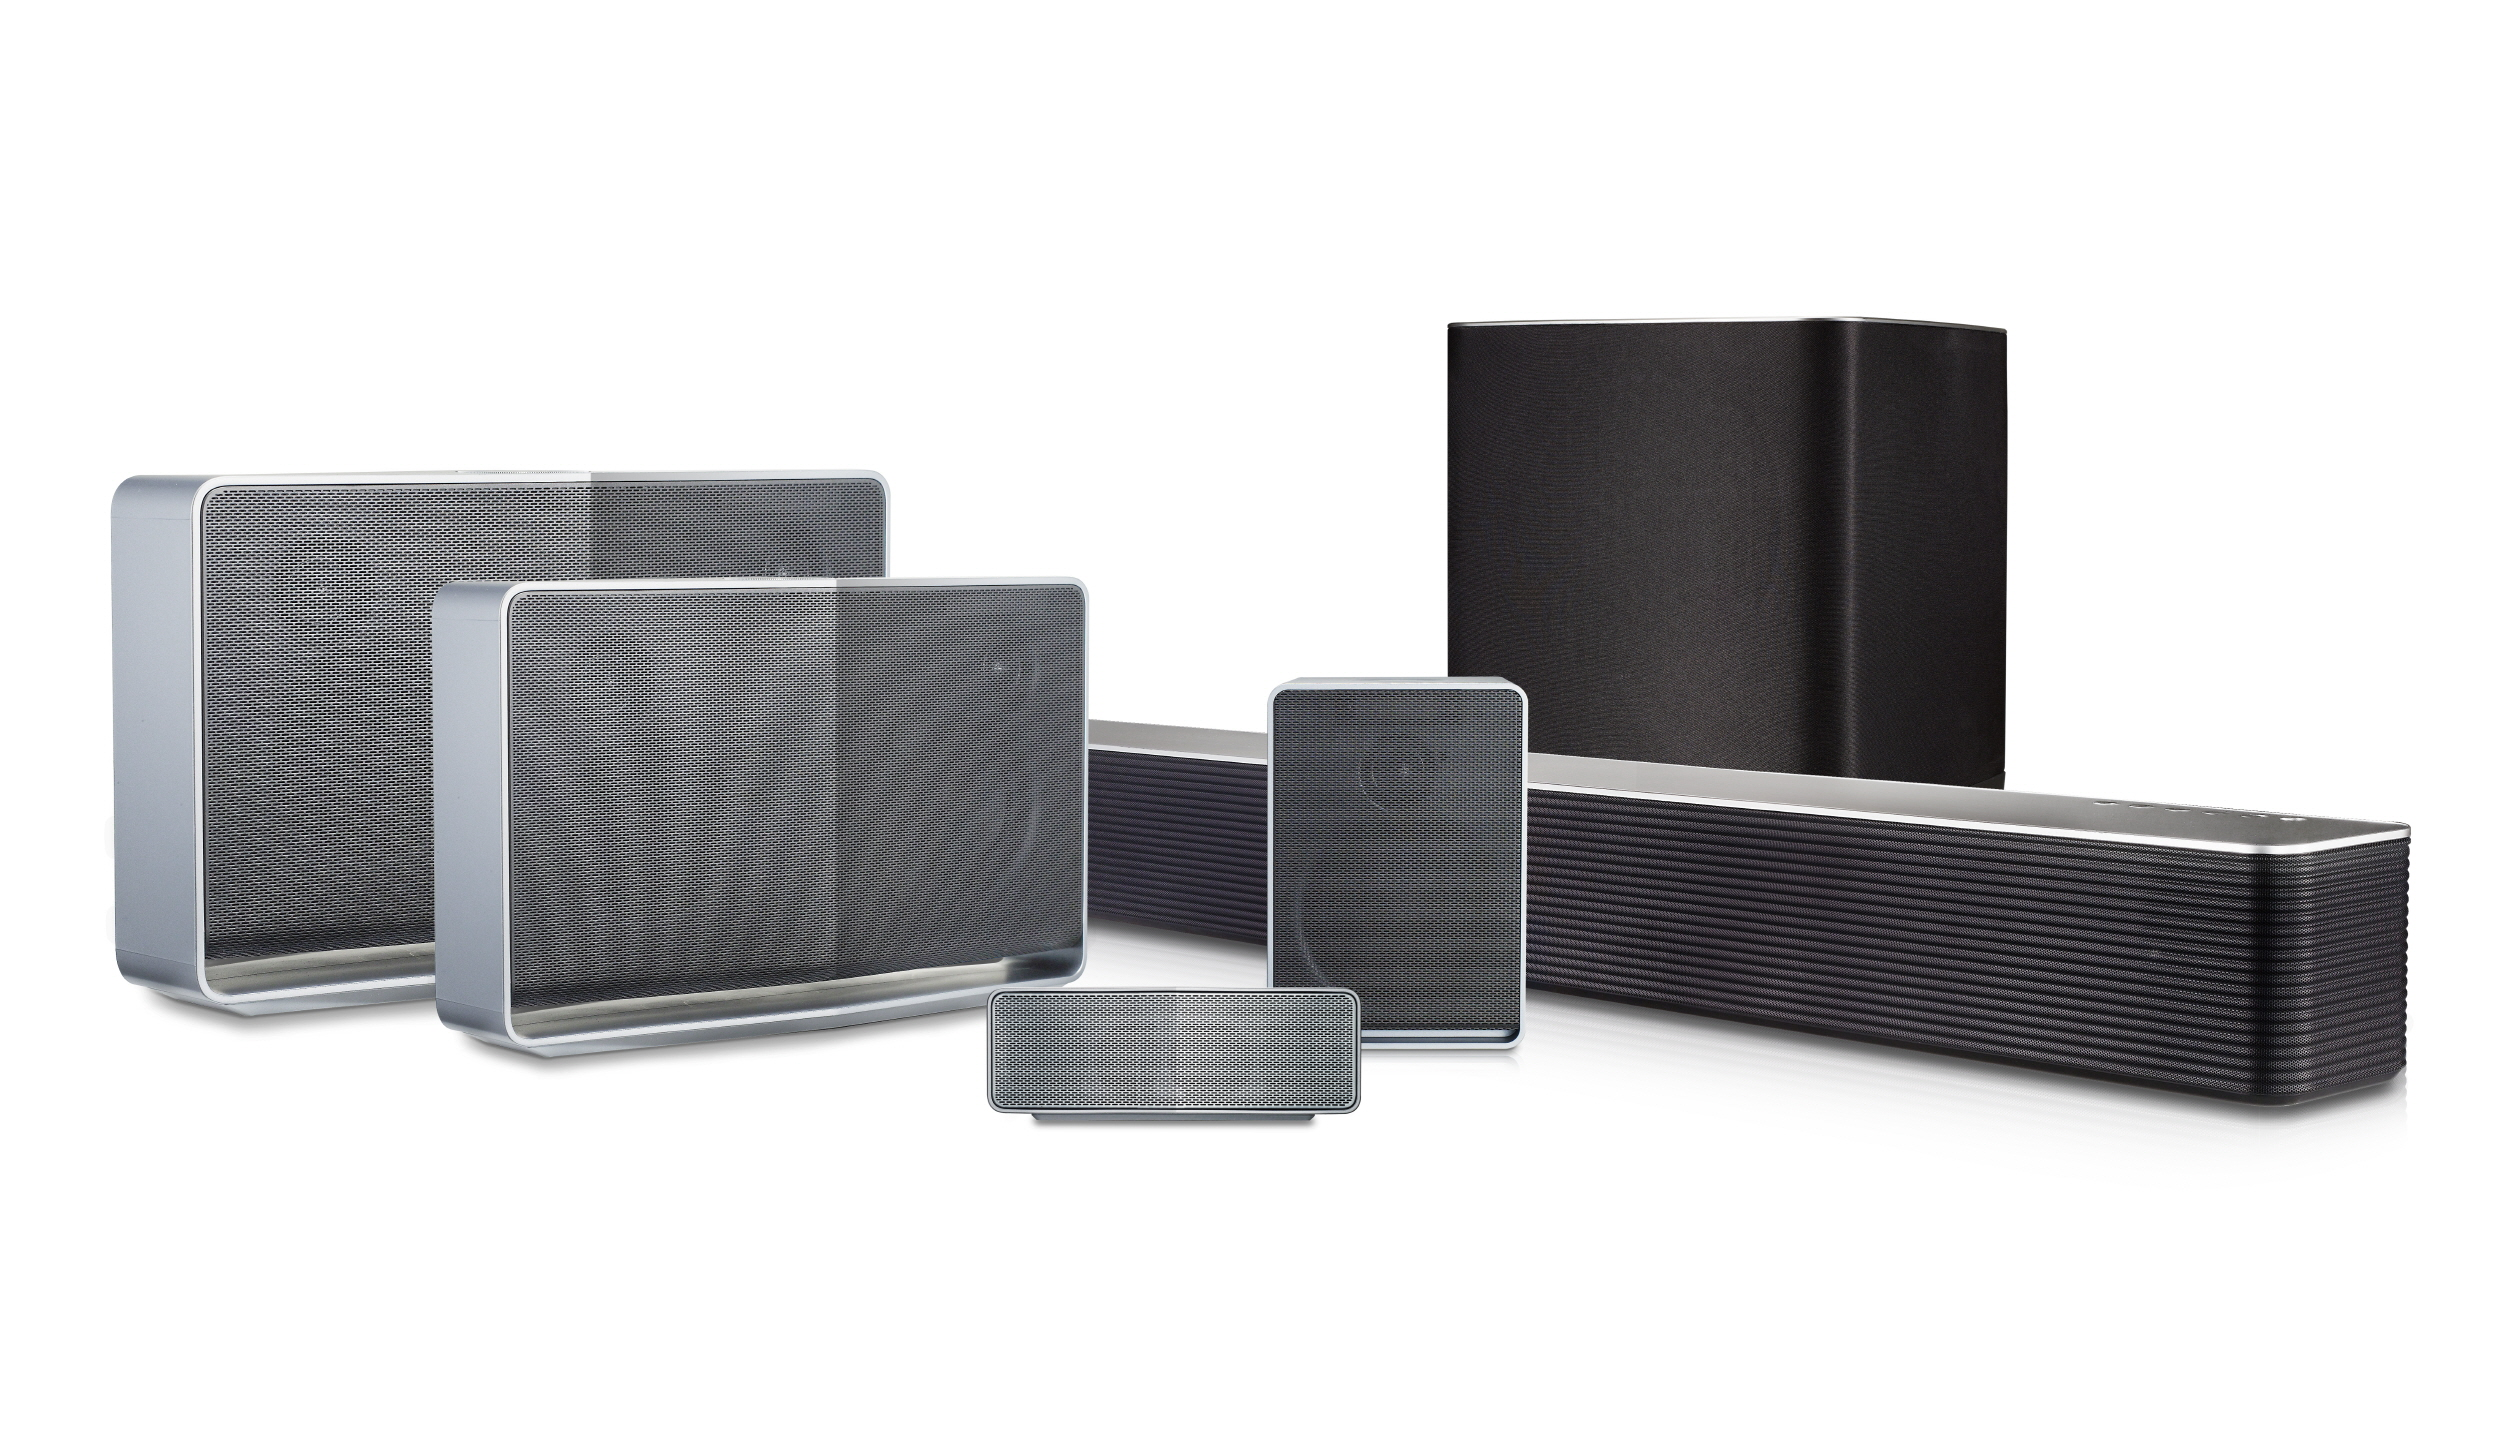 The LG Music Flow lineup featuring its LG battery-powered Portable Wi-Fi Speaker, LG Wi-Fi Speakers and LG Wi-Fi Soundbars